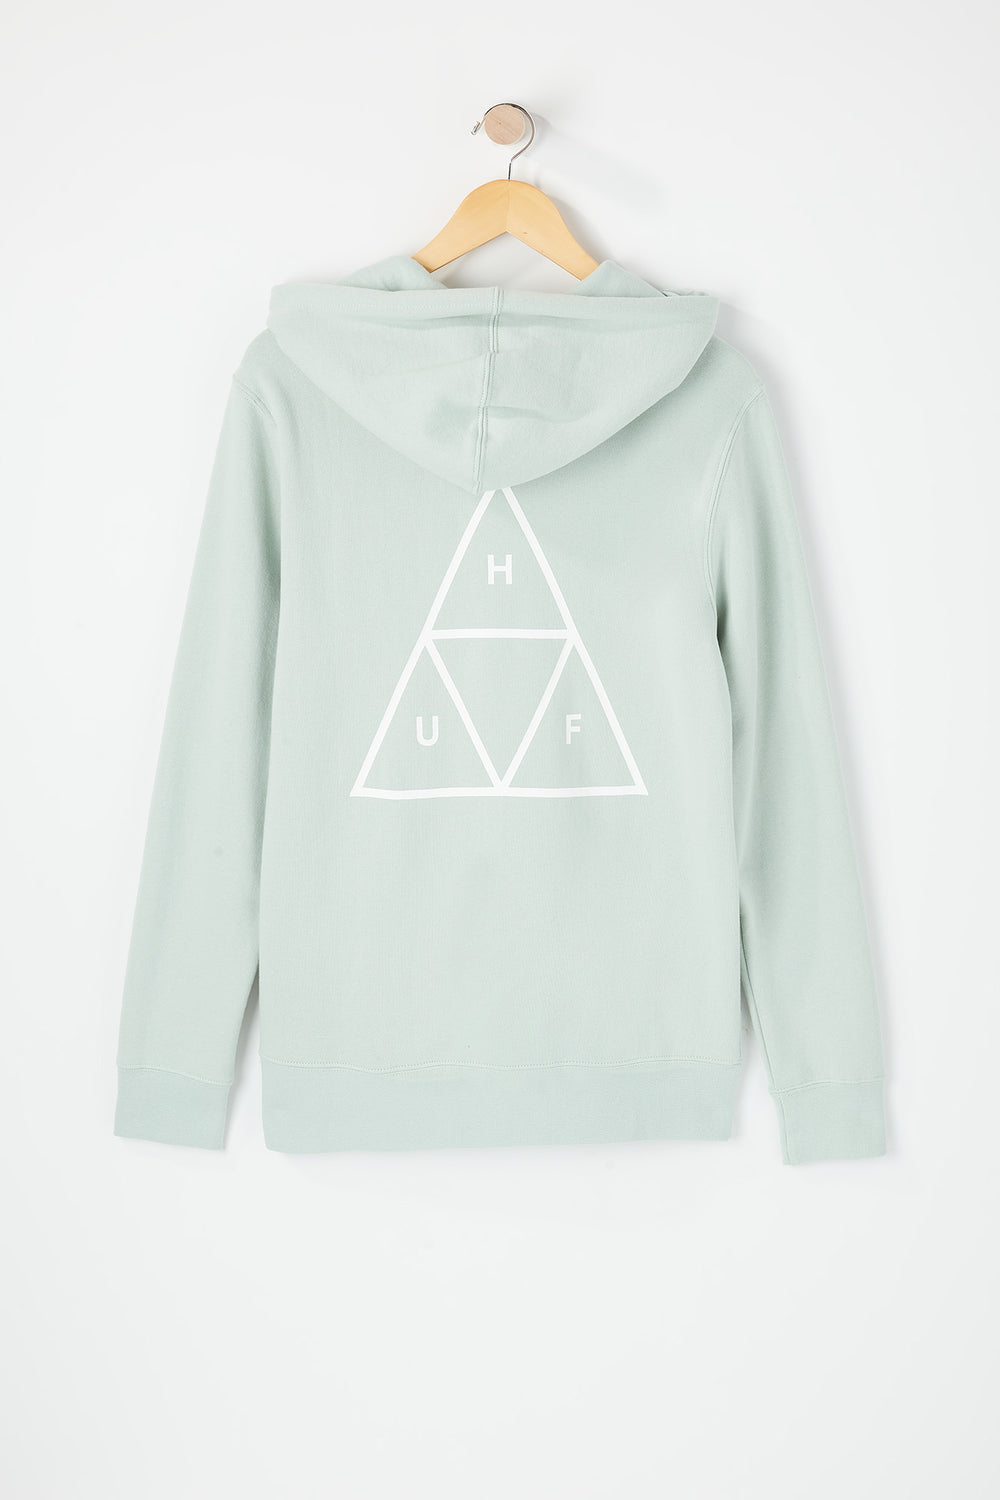 Huf Mens Triple Triangle Hoodie Light Blue